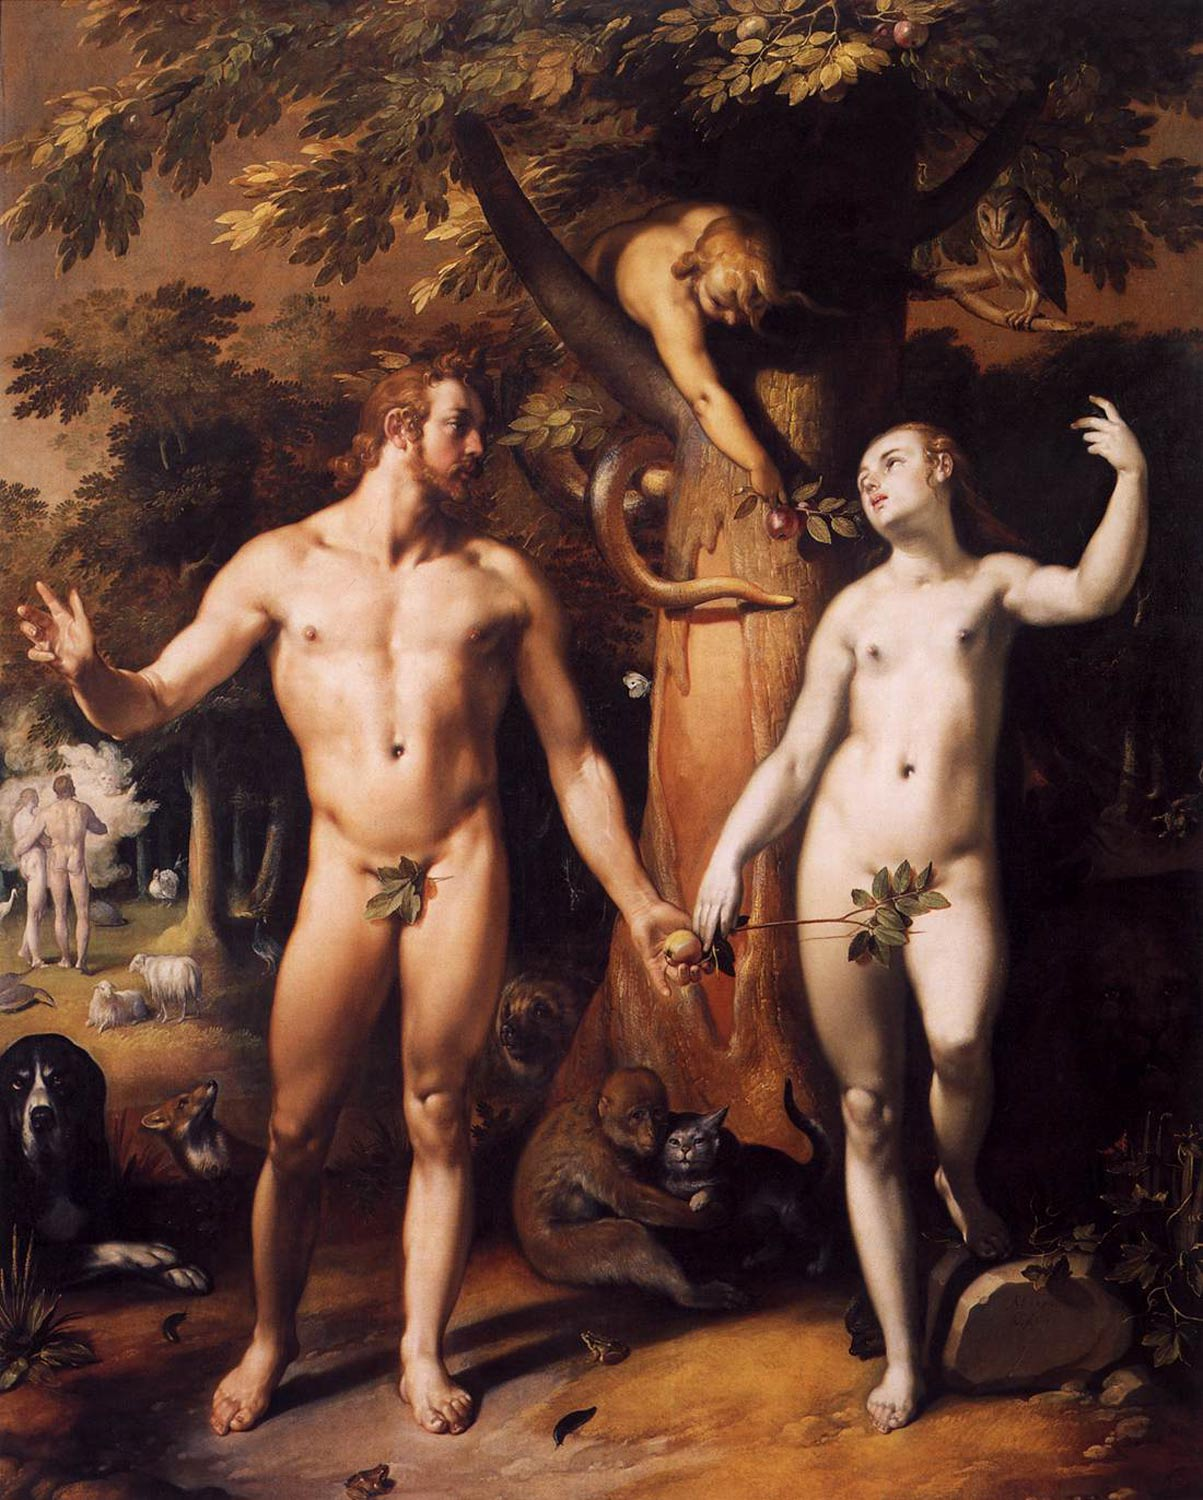 Fall of Man, Cornelis van Haarle, 1592